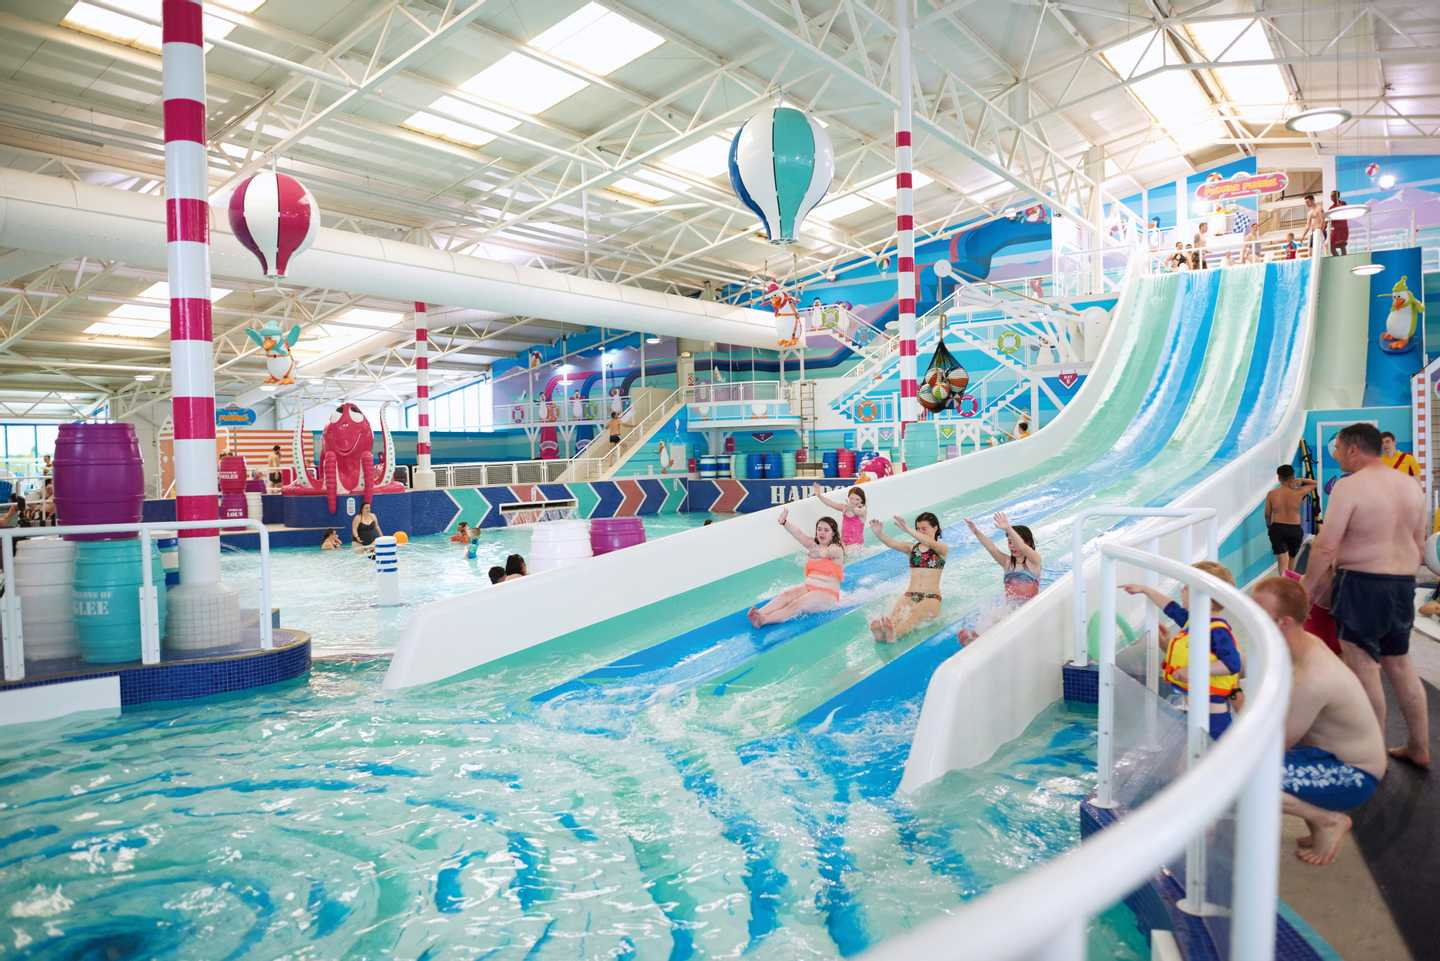 Pool with loads of slides and water facilities